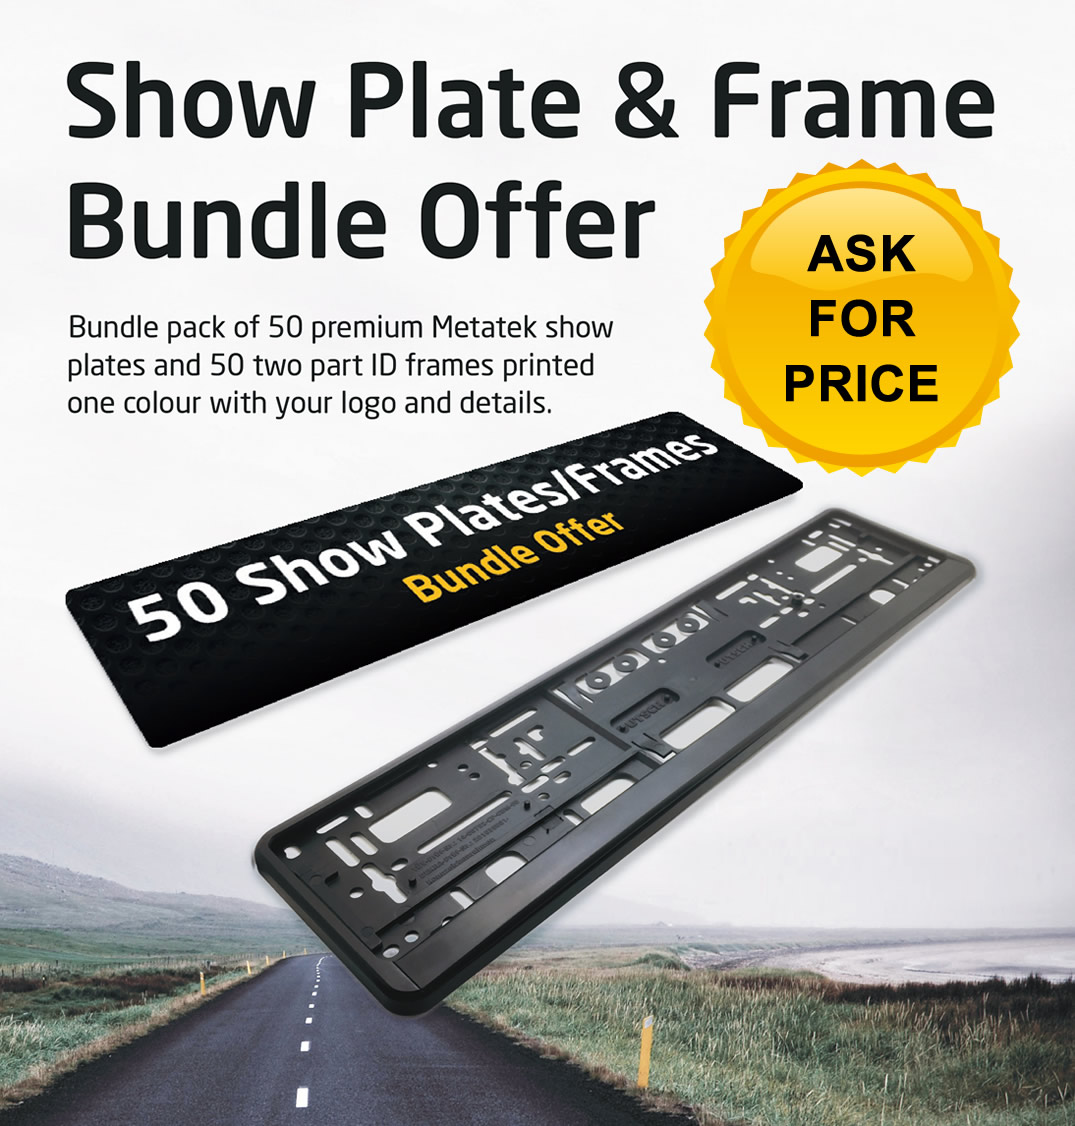 Show Plate Bundle Offer